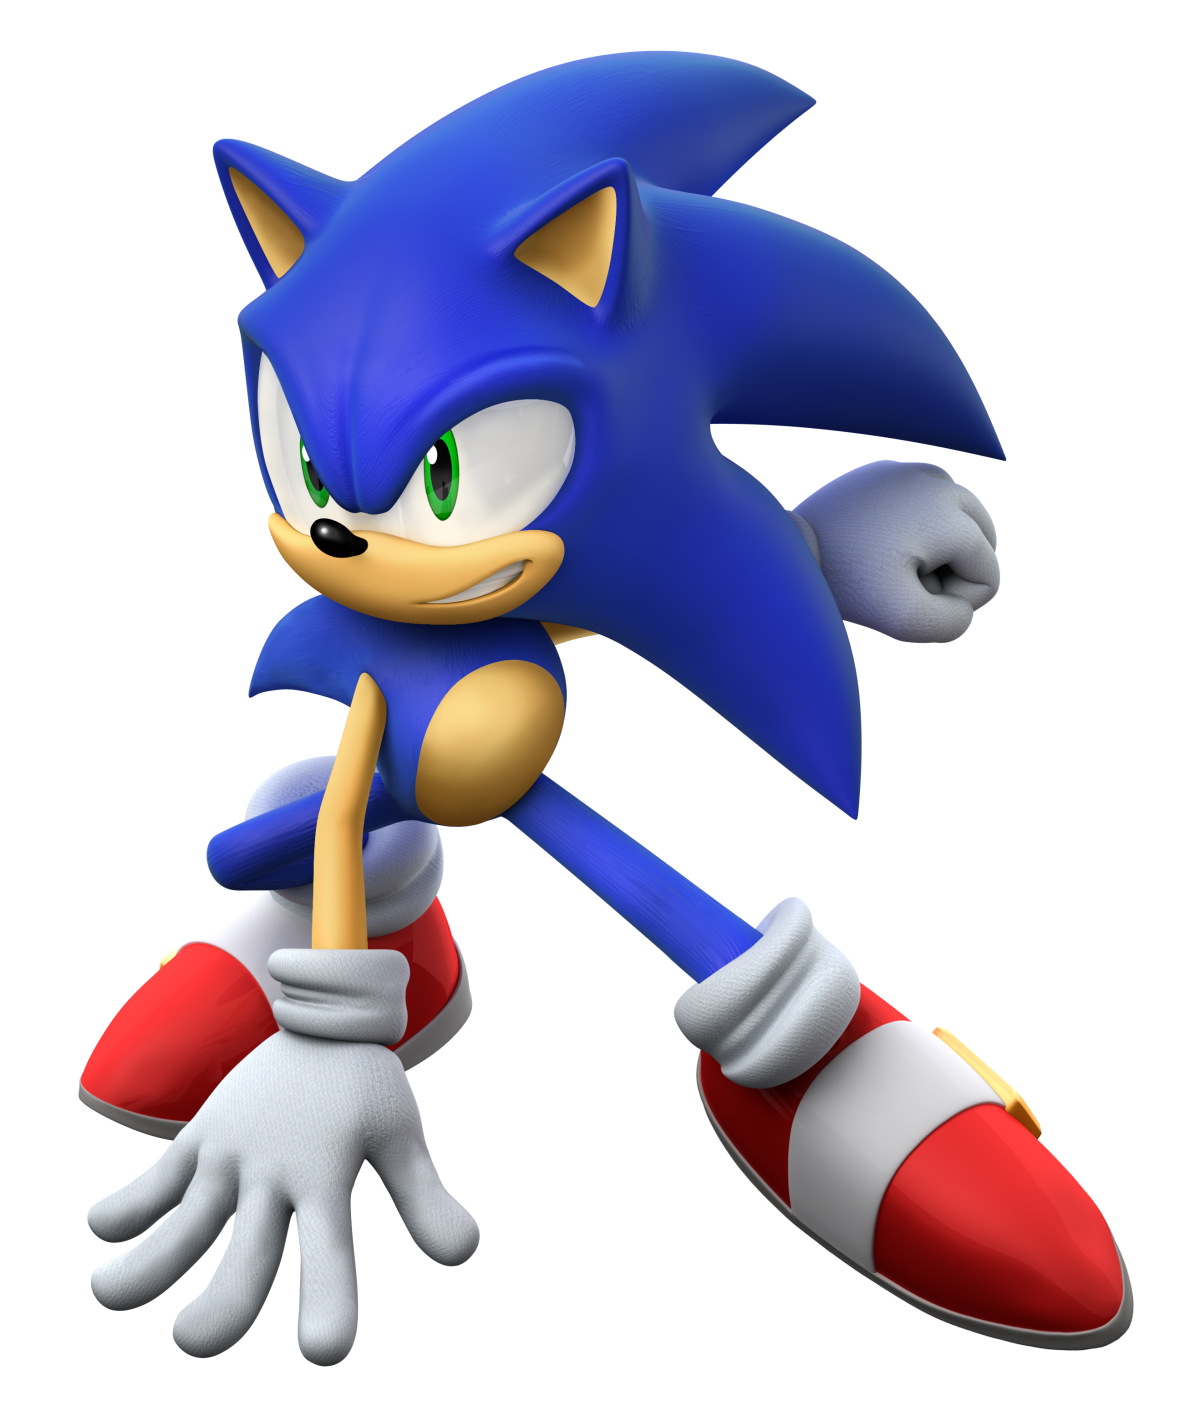 Sonic The Hedgehog svg #2, Download drawings